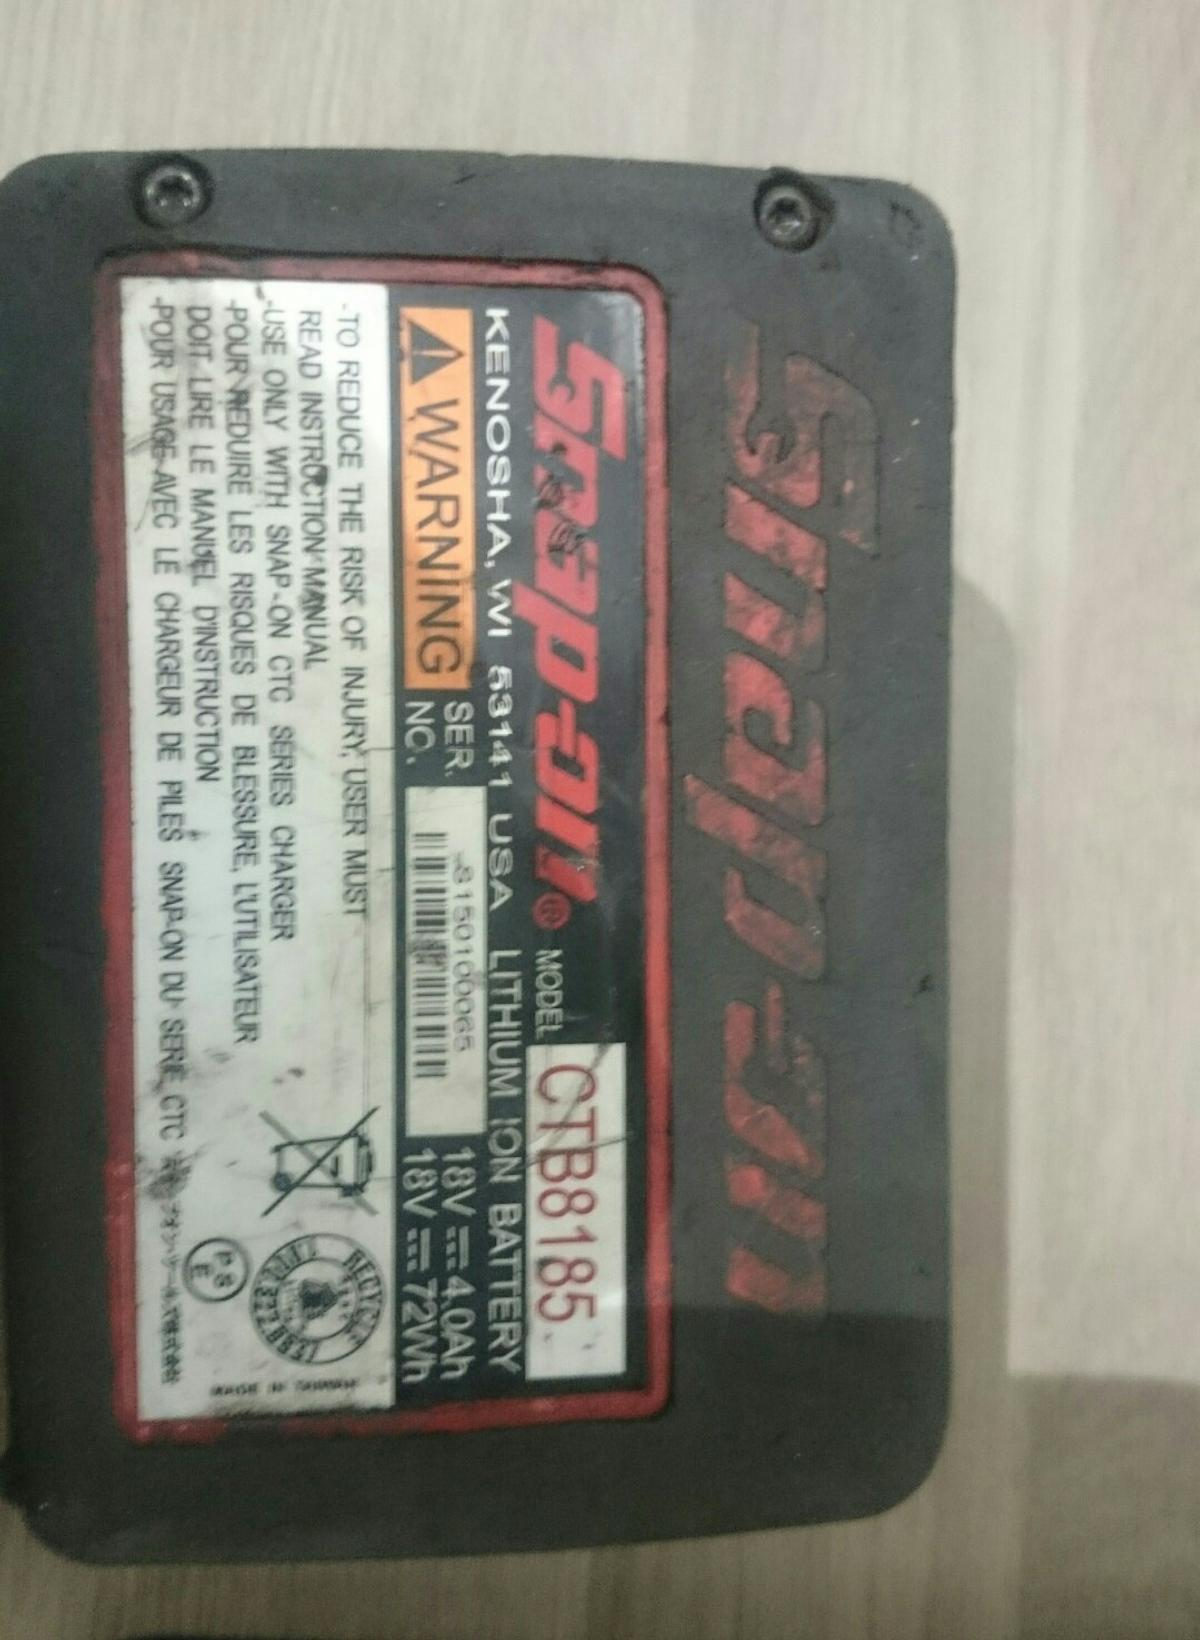 Snap-on lithium-ion 18v battery CTB8185